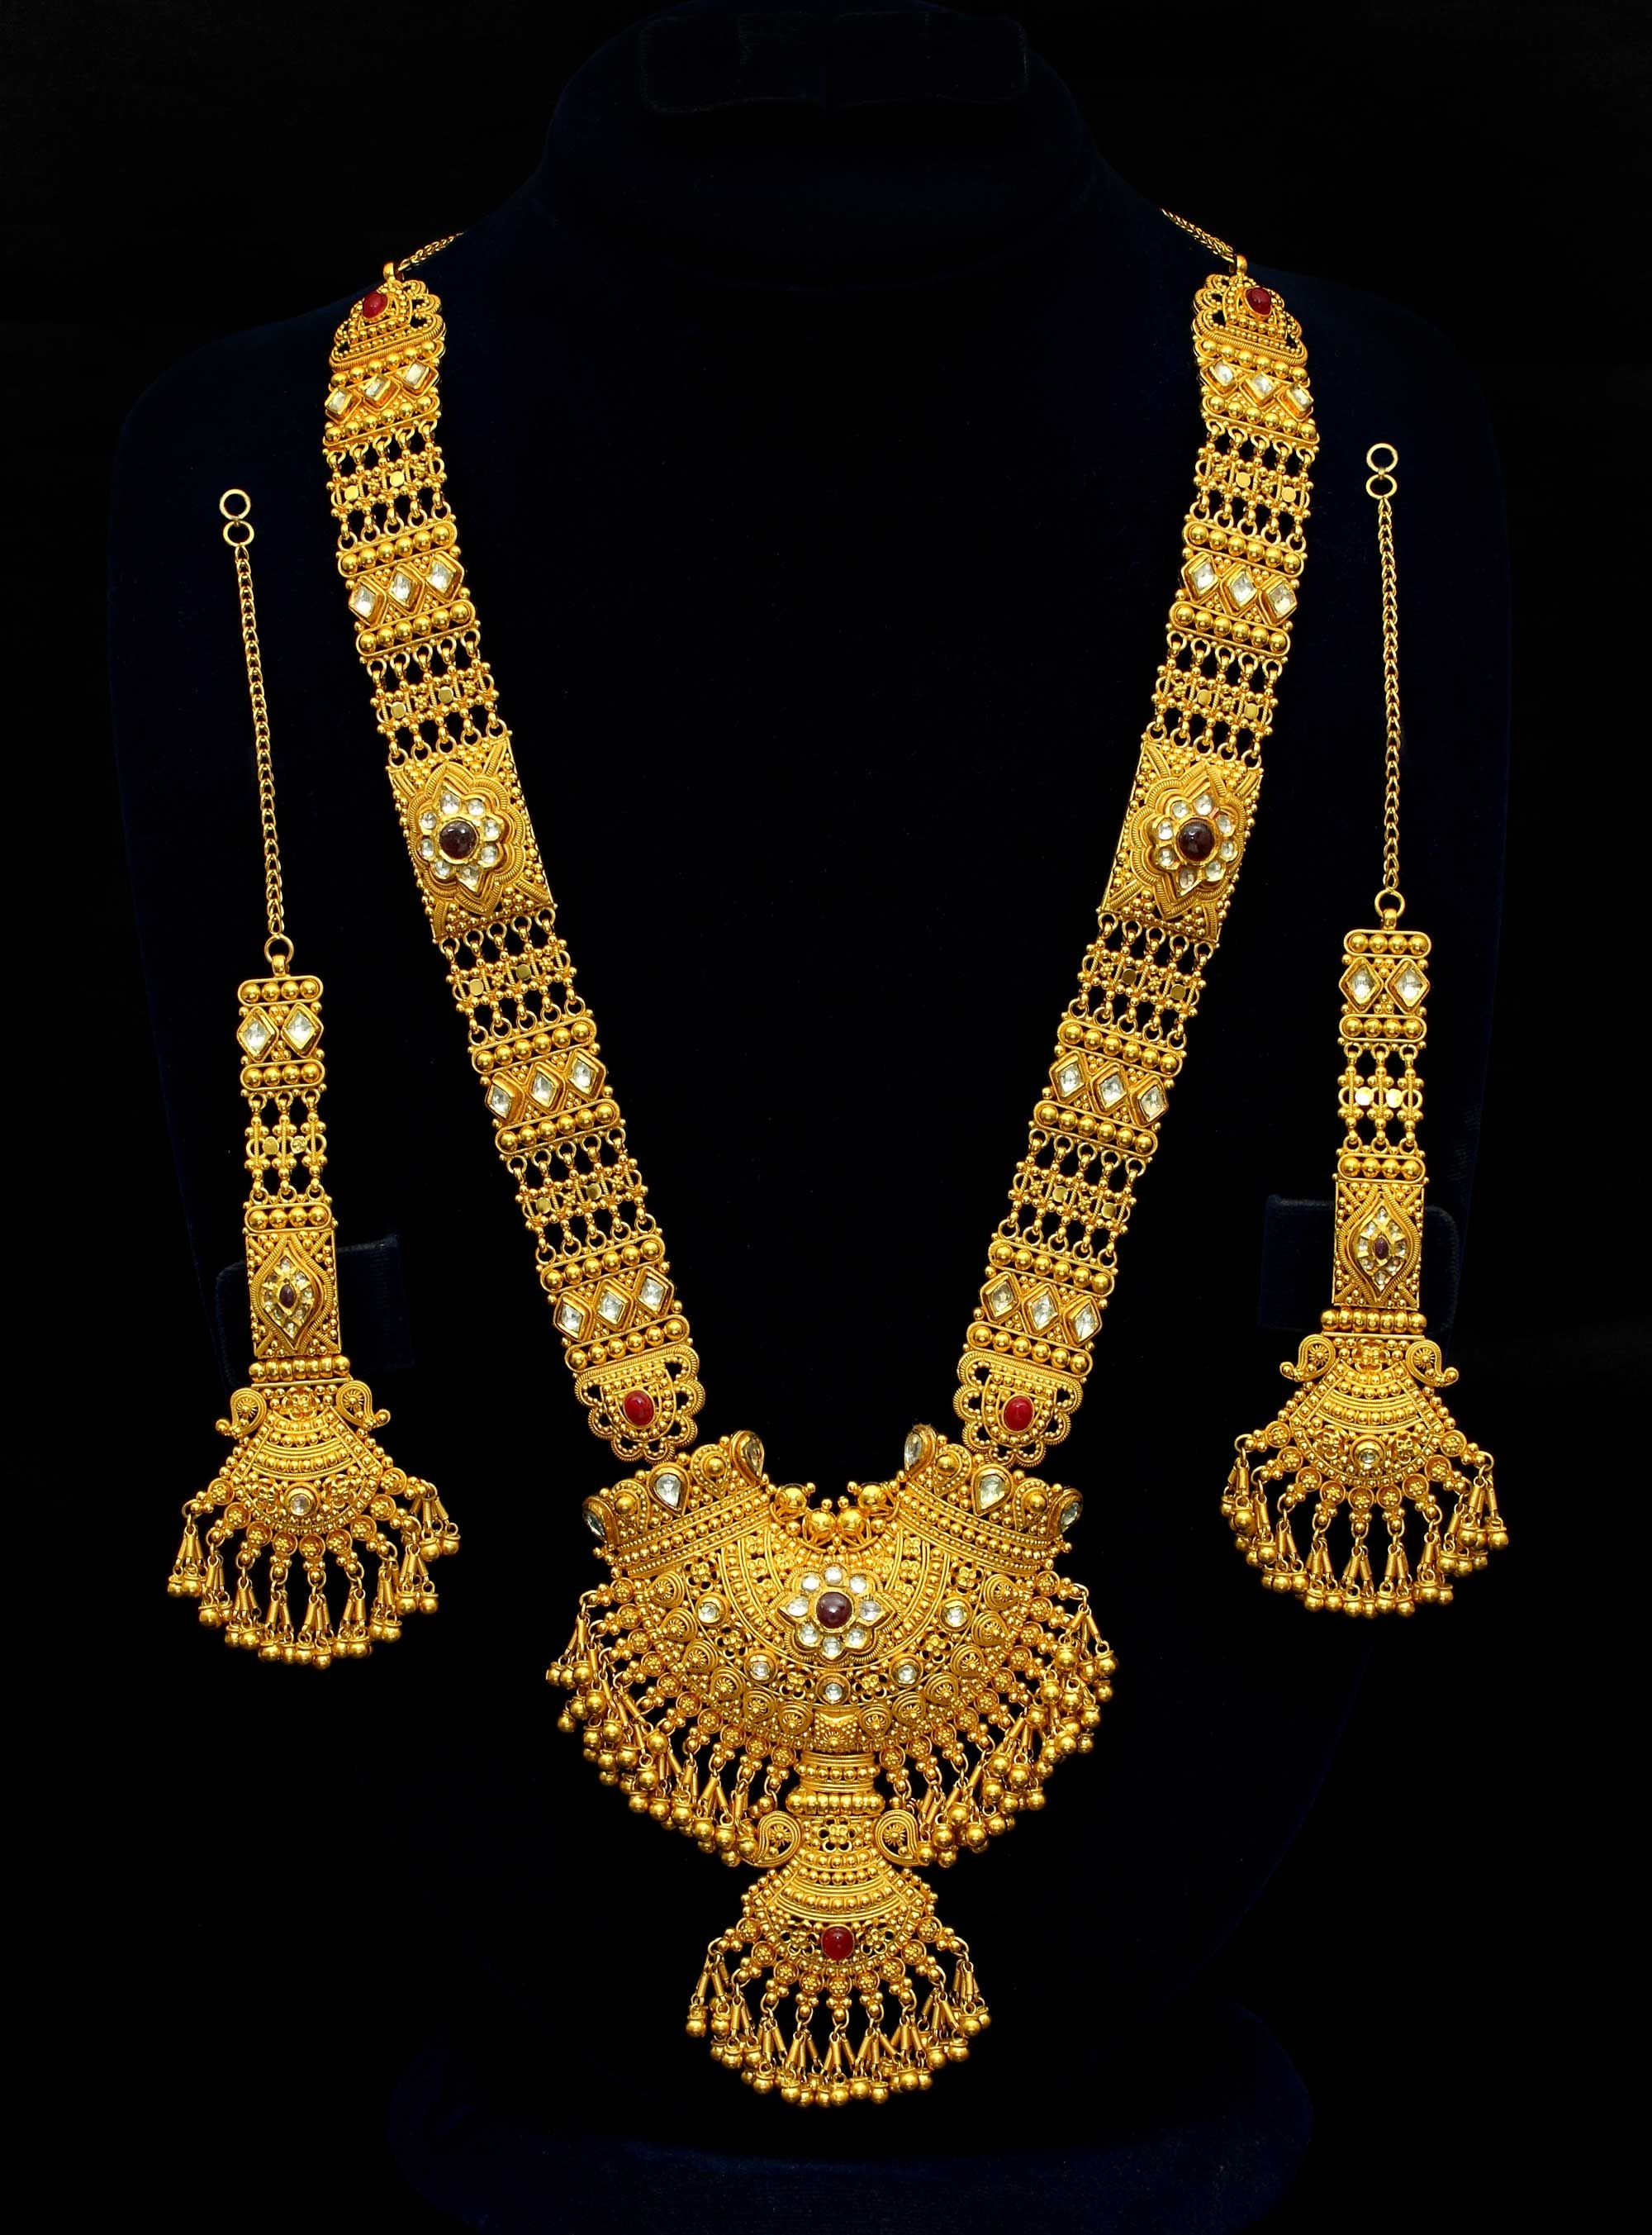 Malabar gold jewellery designs dubai - Explore Short Necklace Long Necklaces And More